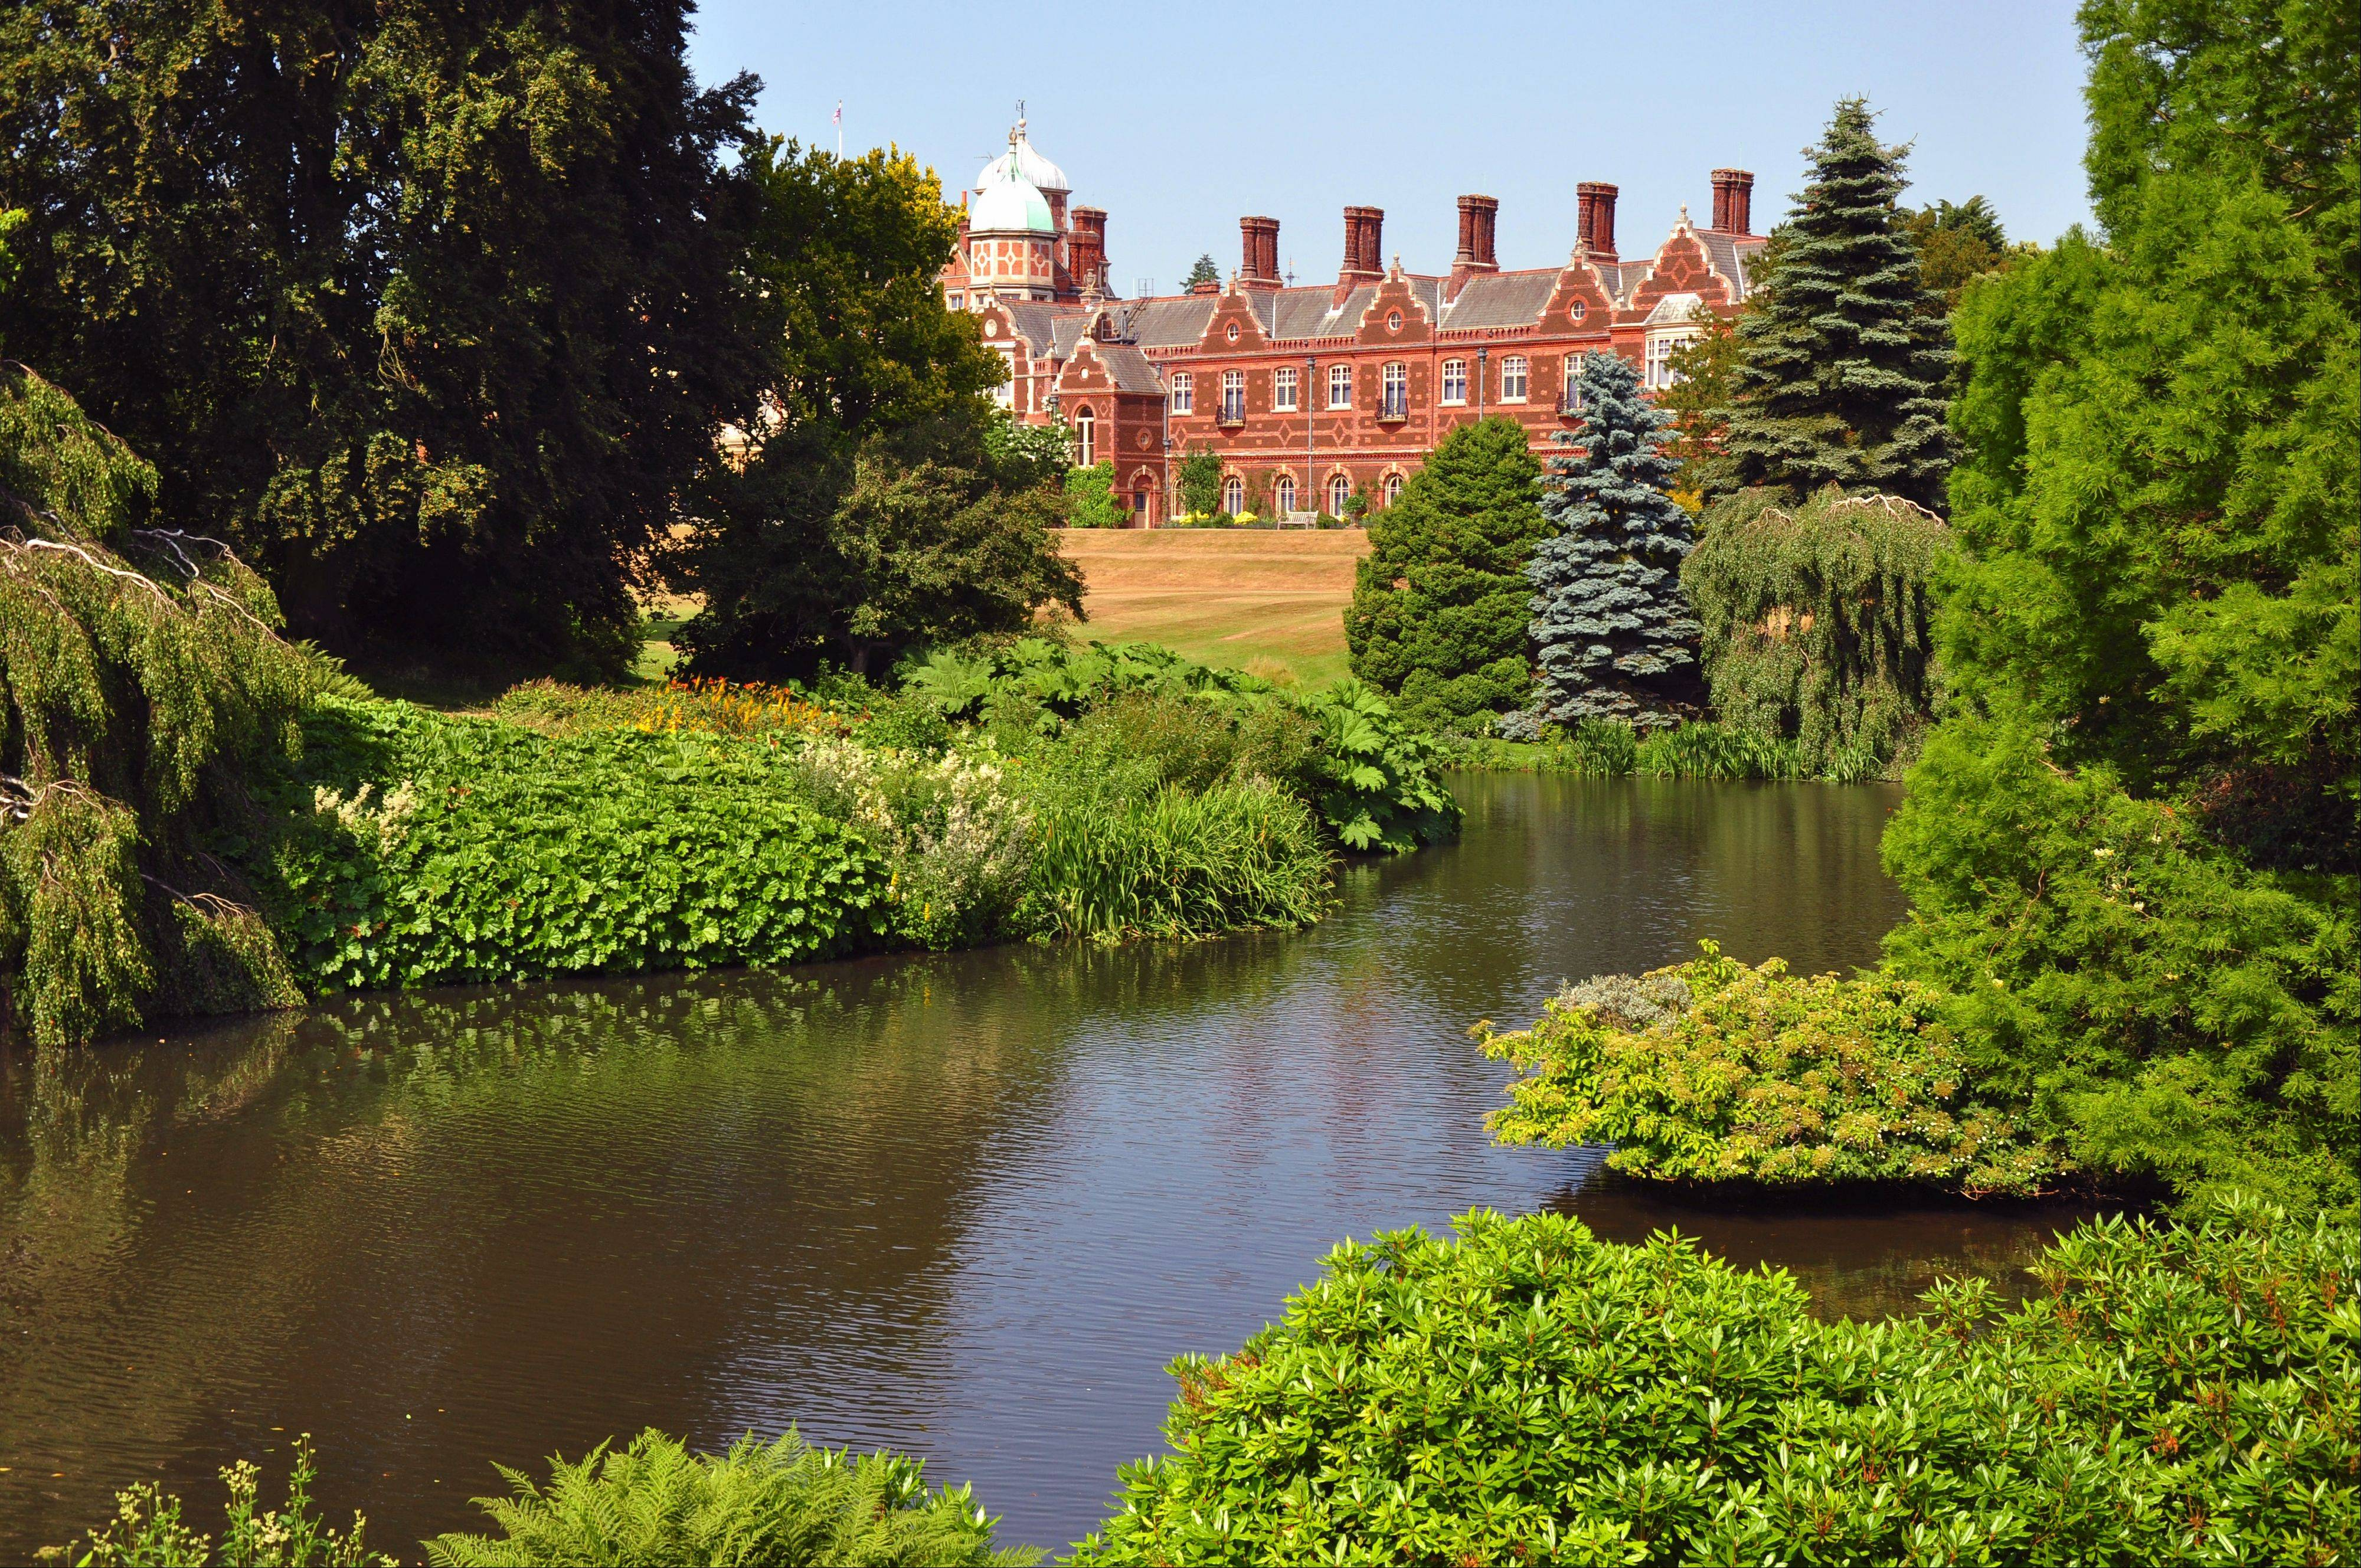 The royal estate of Sandringham covers 20,000 acres, including 60 acres of gardens perfect for a stroll.